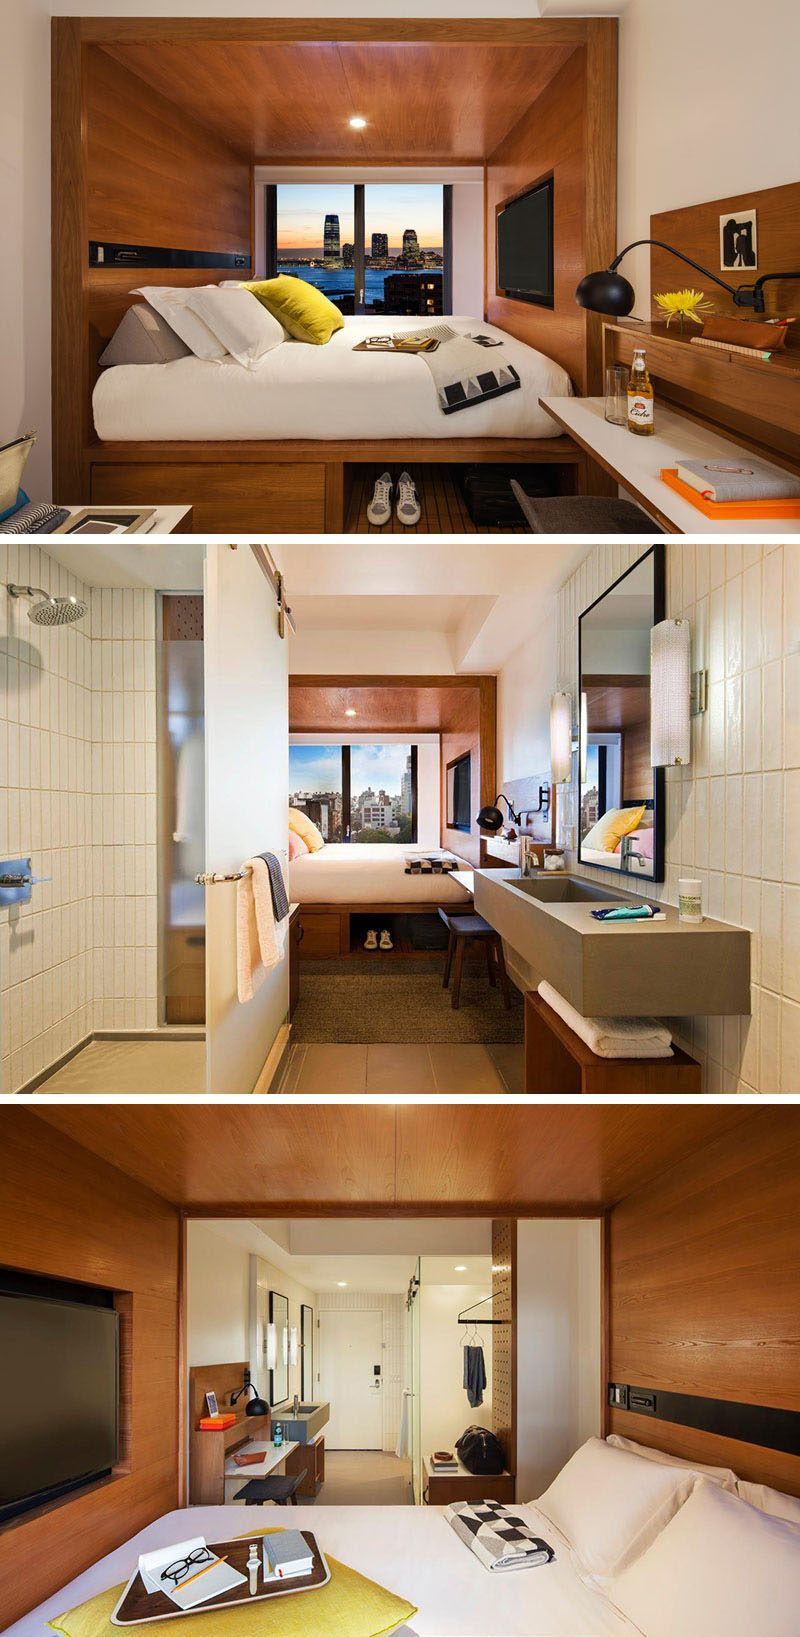 8 Small Hotel Rooms That Maximize Their